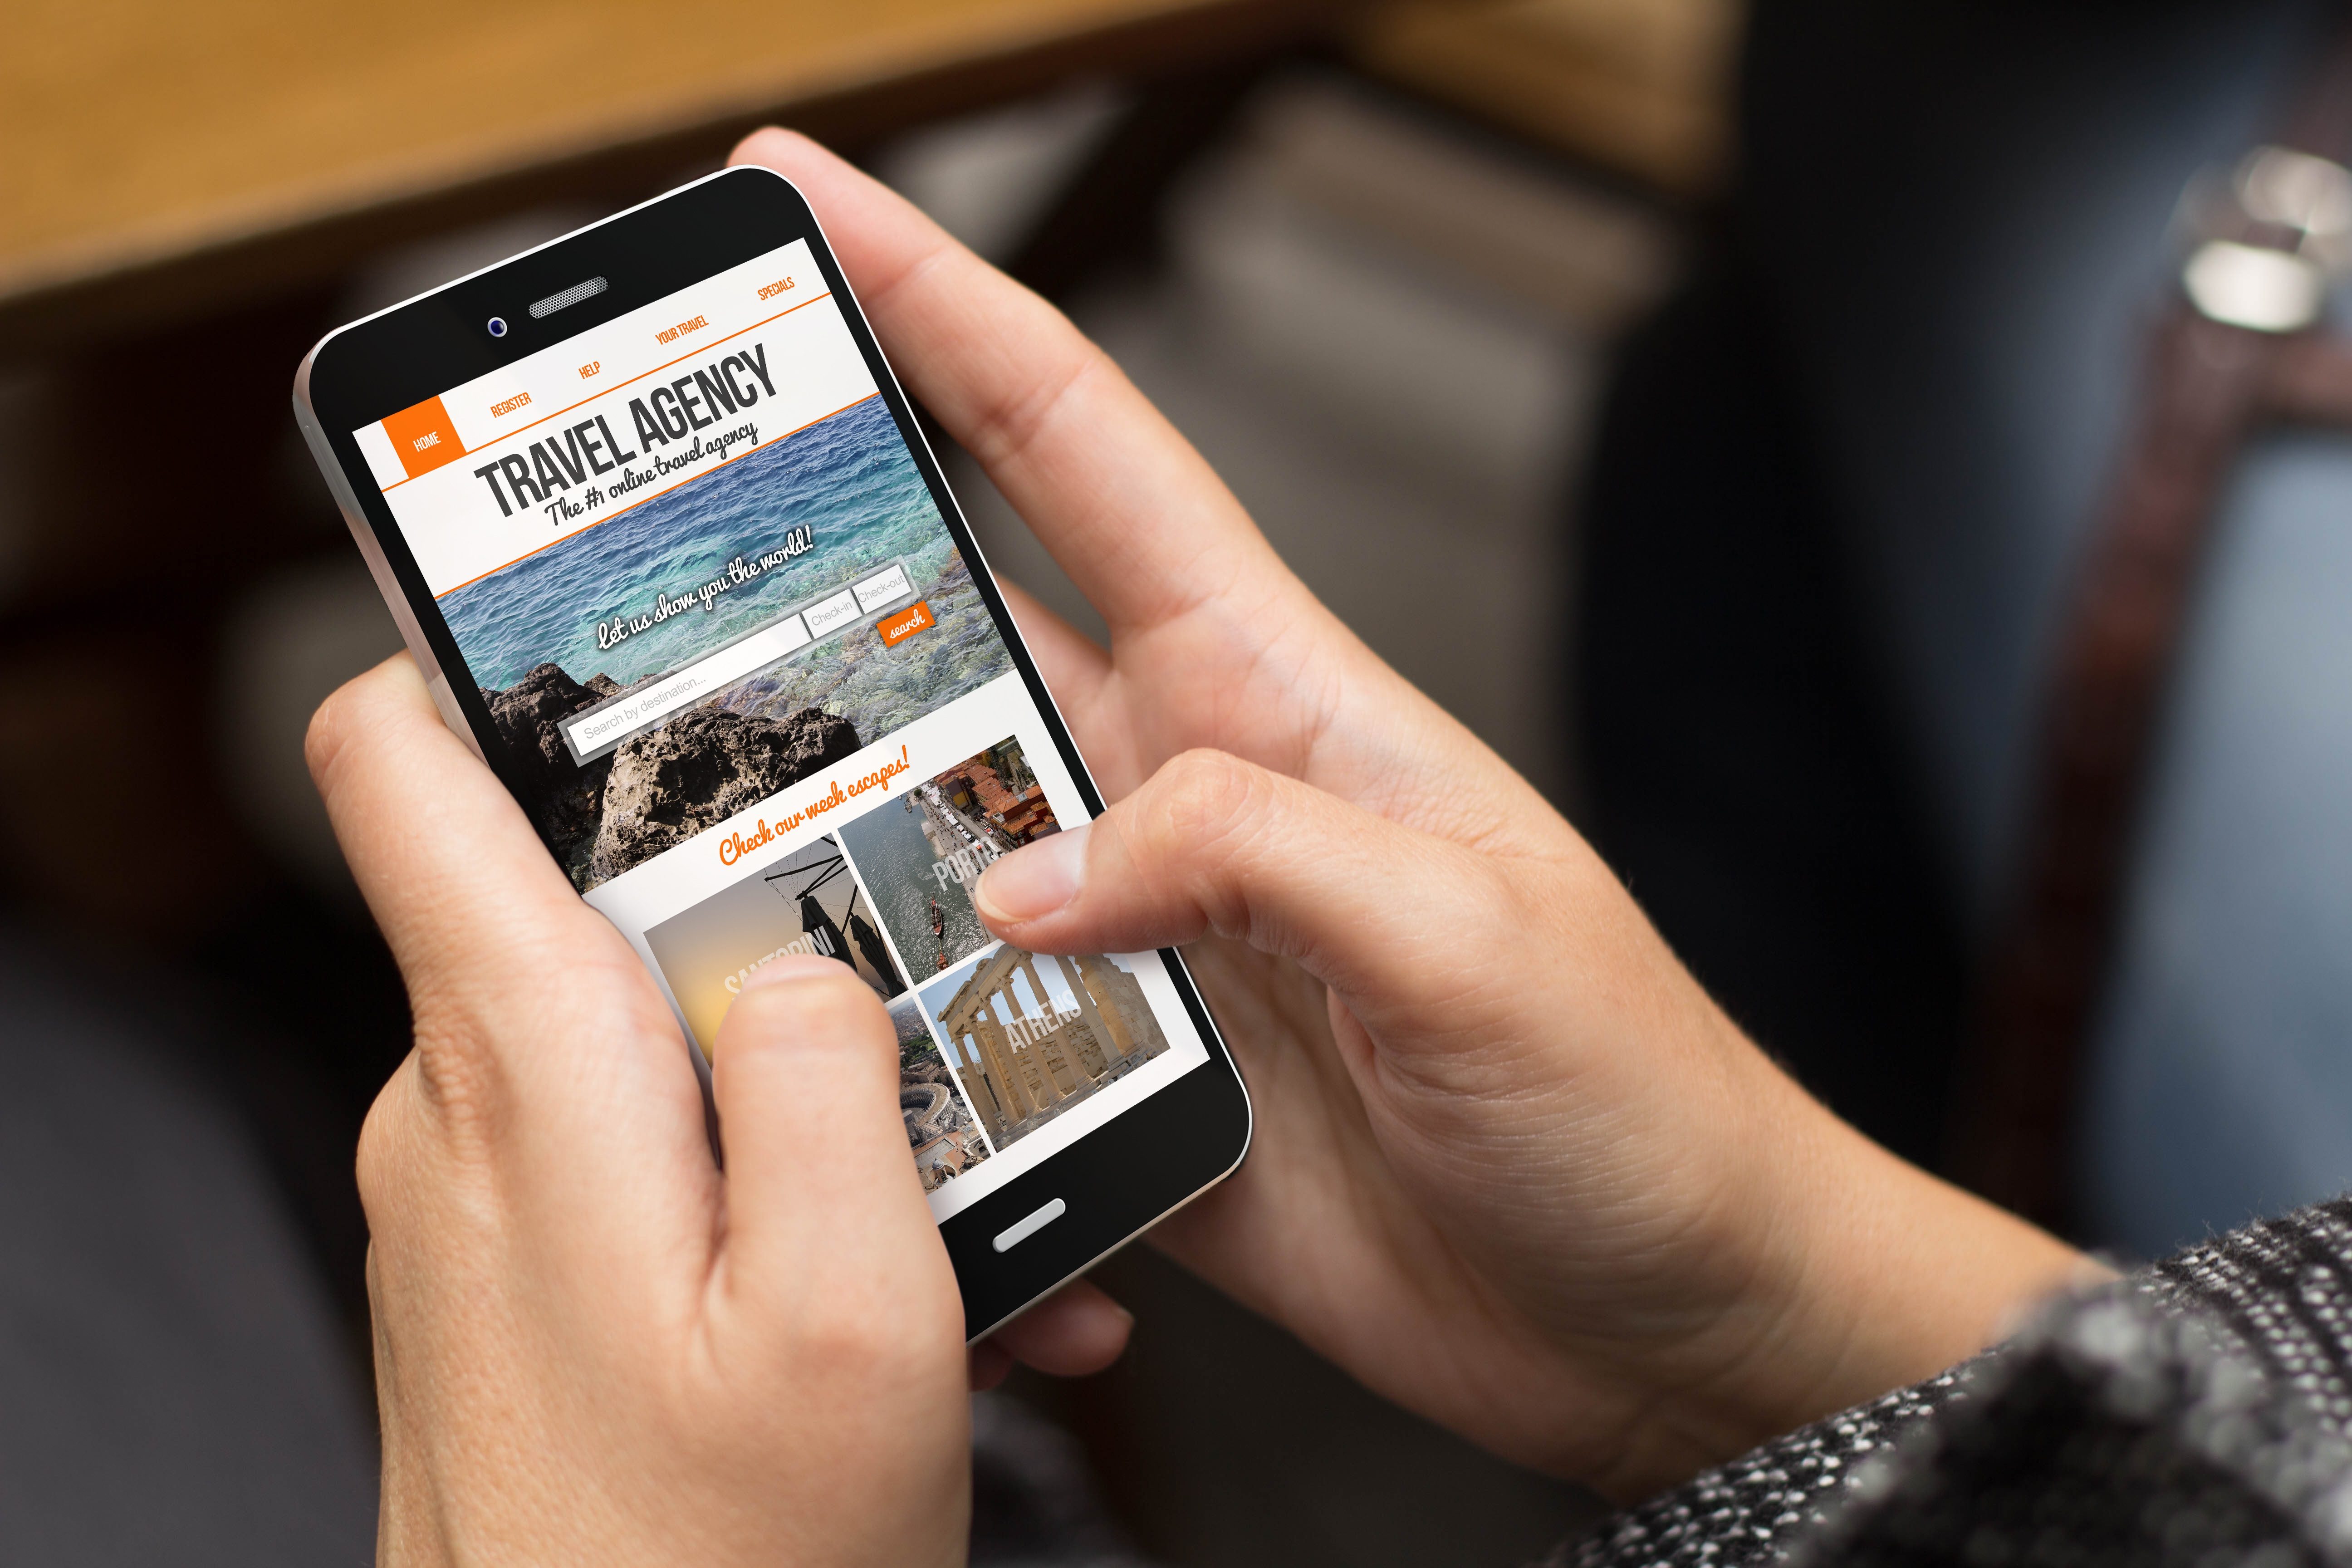 Penalty for Sites Using Pop-ups in Mobile Views Goes into Effect Jan. 10